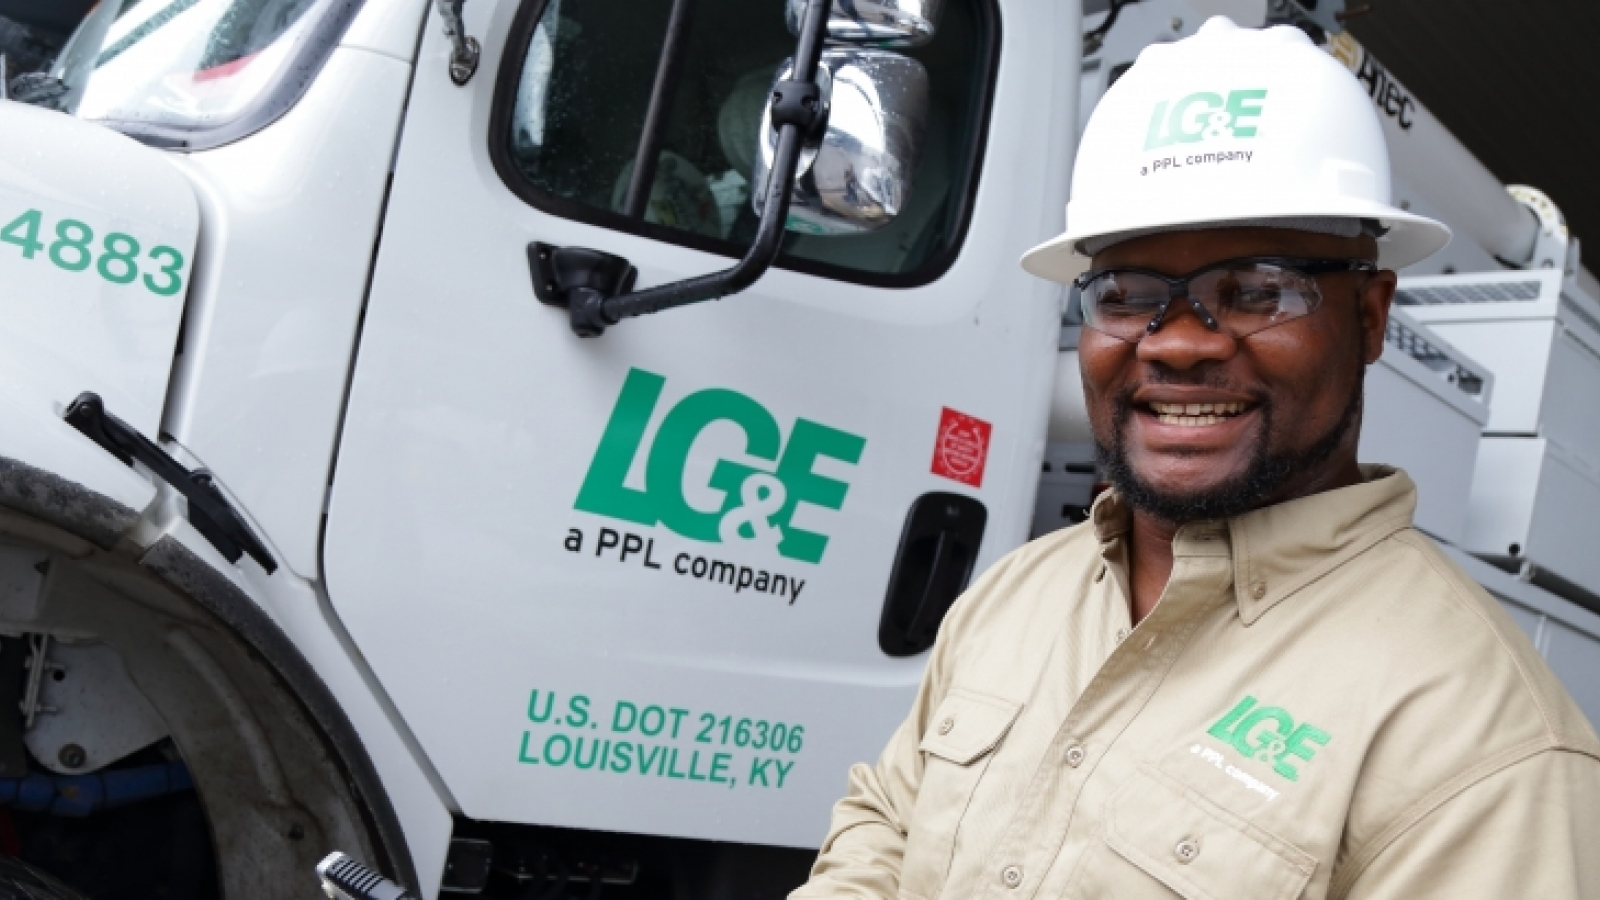 African-American male LG&E employee wearing hardhat standing in front of bucket truck